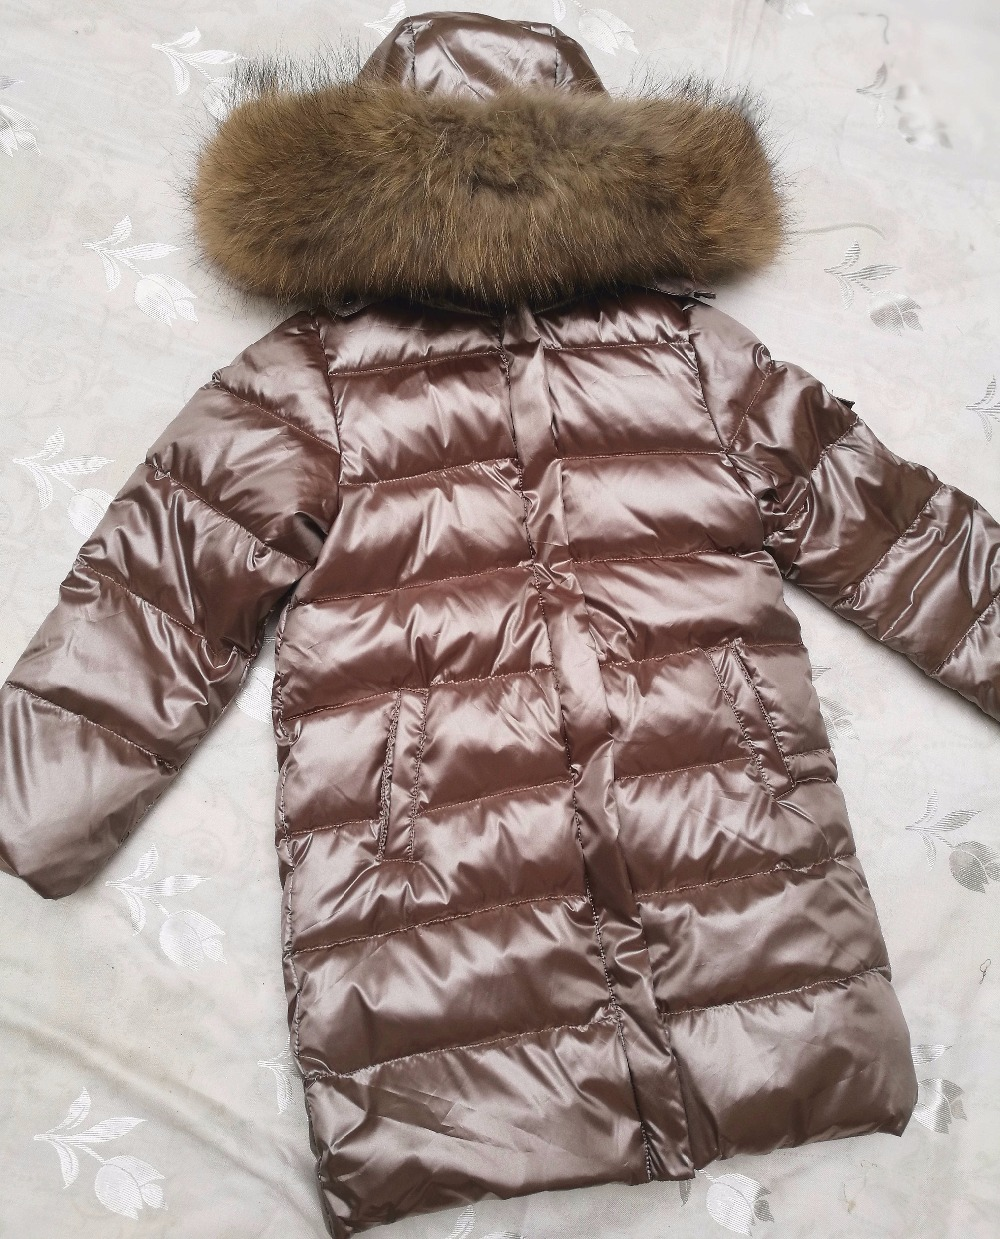 Winter Jacket Baby Girl Parkas Coat Fur Hood Winter Down Jackets Kids Hooded Down Coats Thick Children's Warm Real Fur Collar